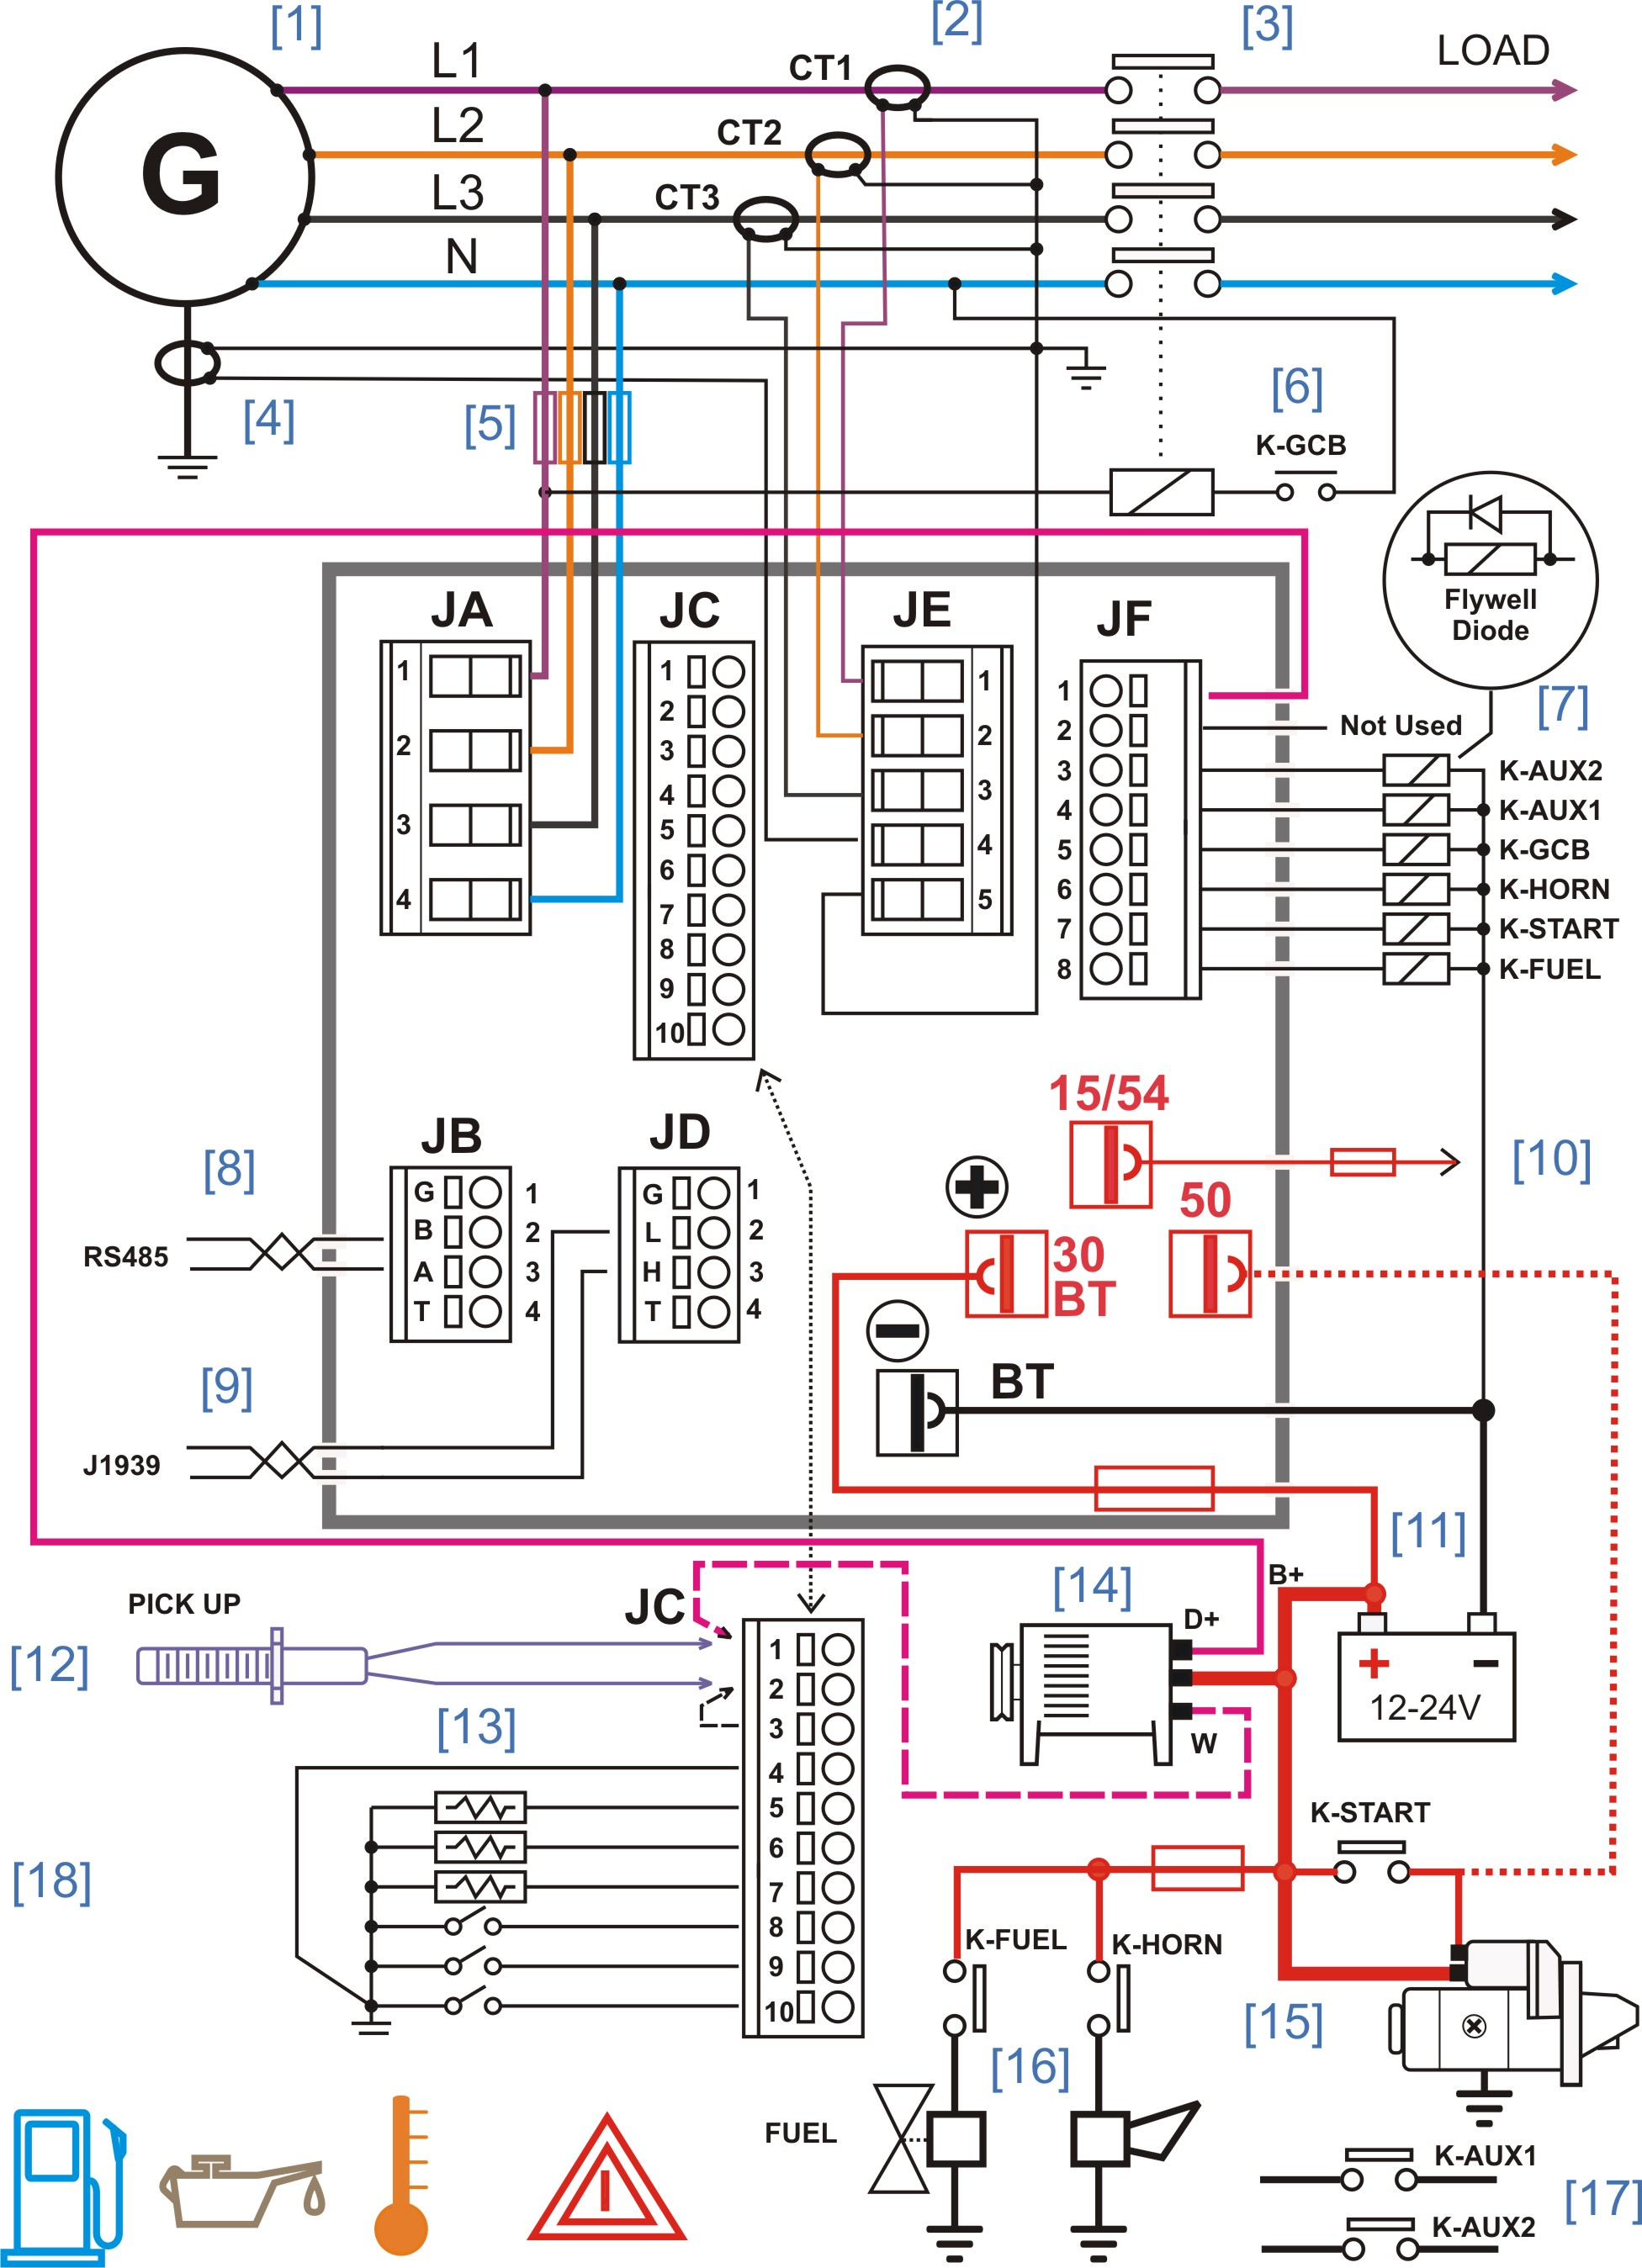 Cat 11 Wiring Diagram Diesel Generator Control Panel Wiring Diagram